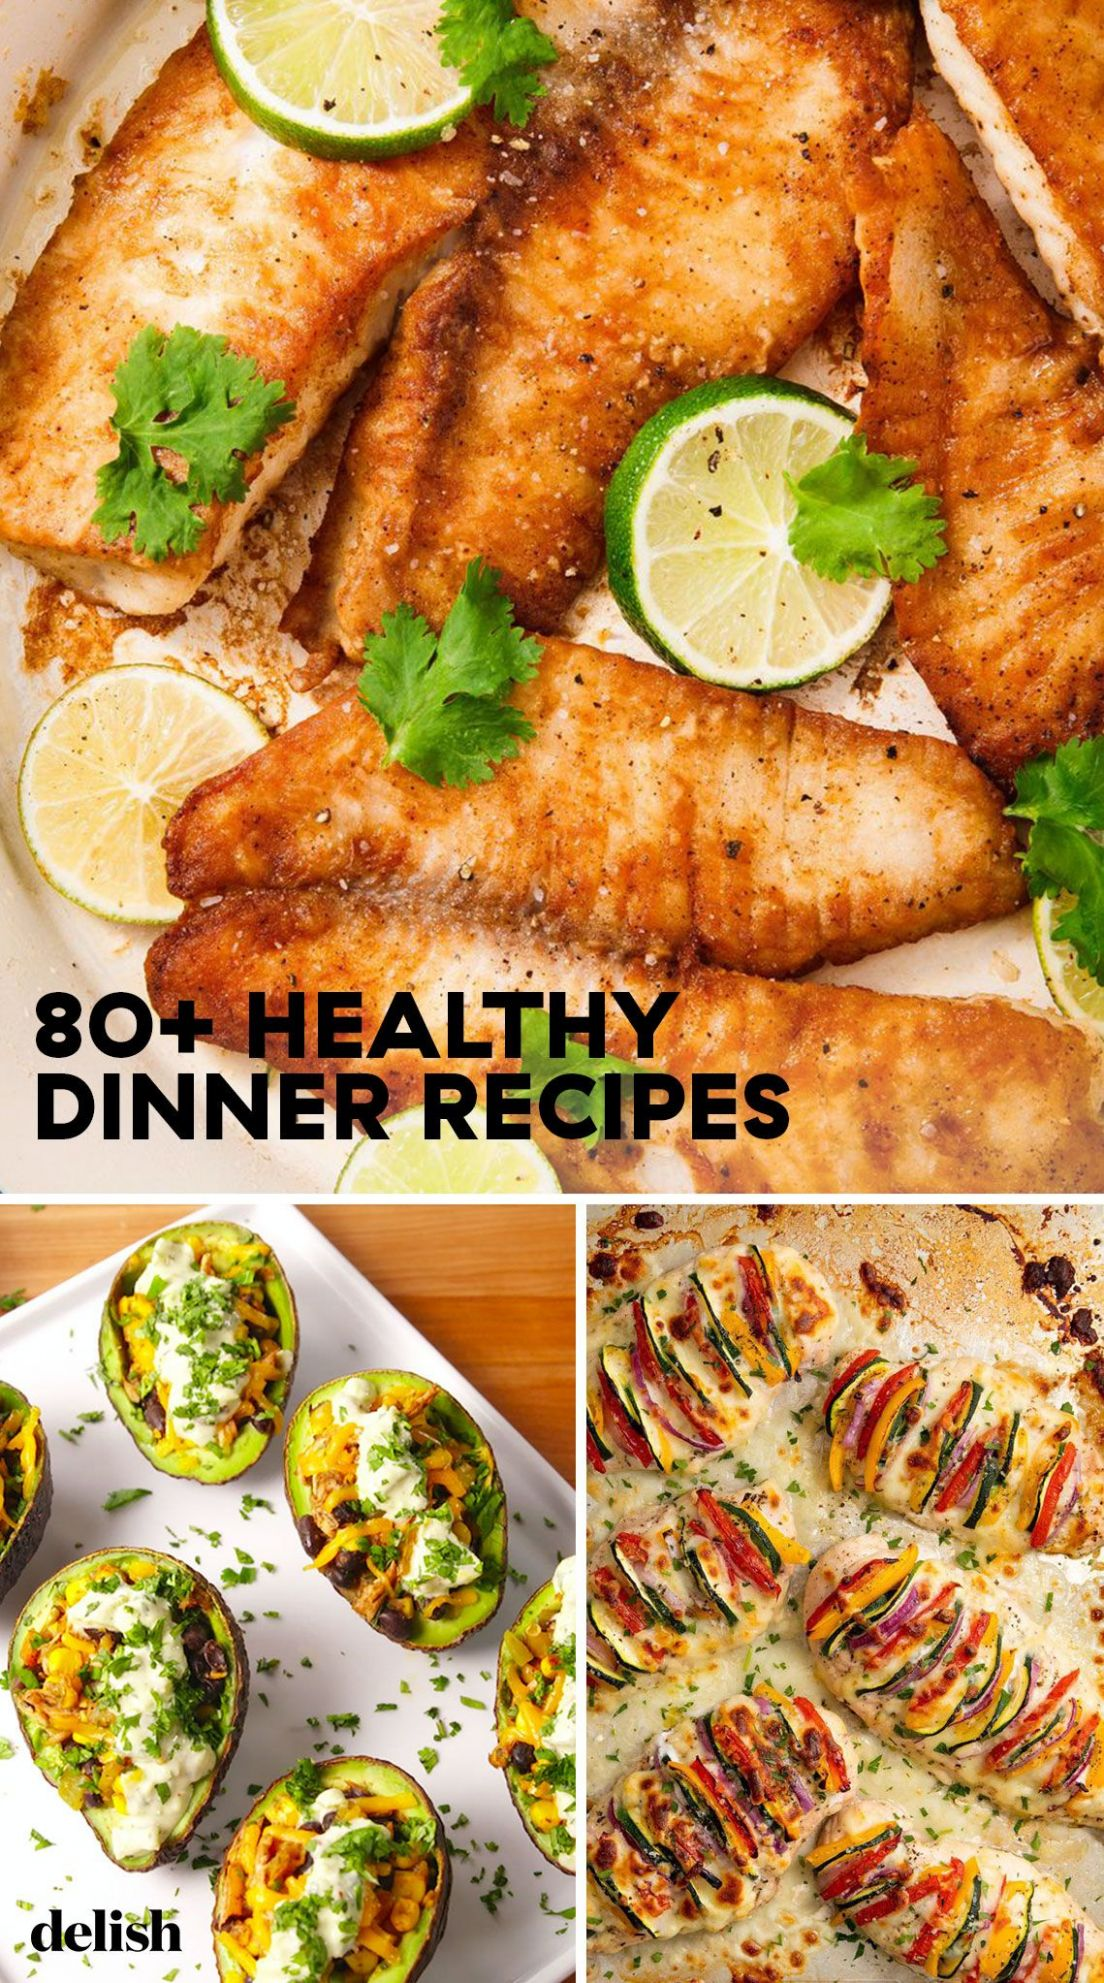 10+ Easy Healthy Dinner Ideas - Best Recipes for Healthy Dinners - Dinner Recipes Delish